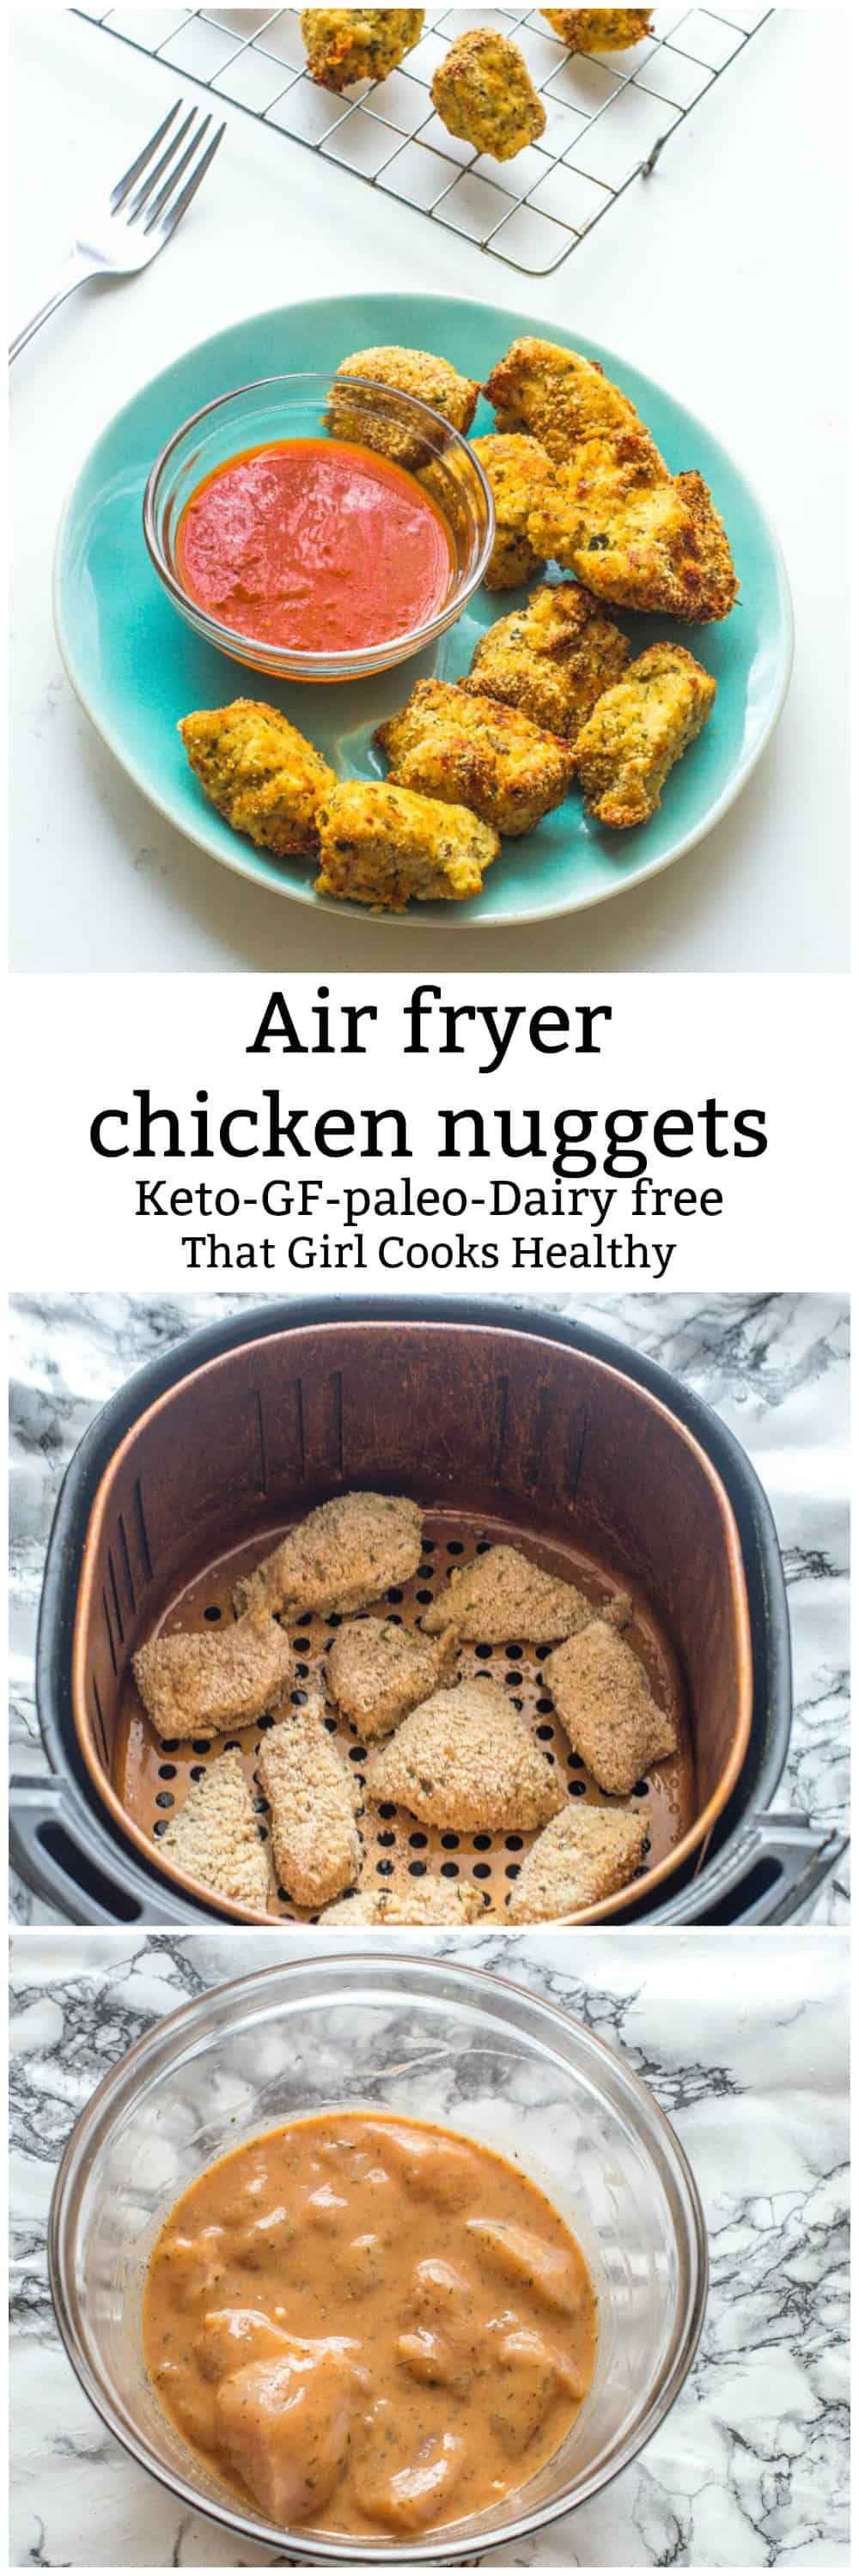 Delicious low carb air fryer chicken nuggets